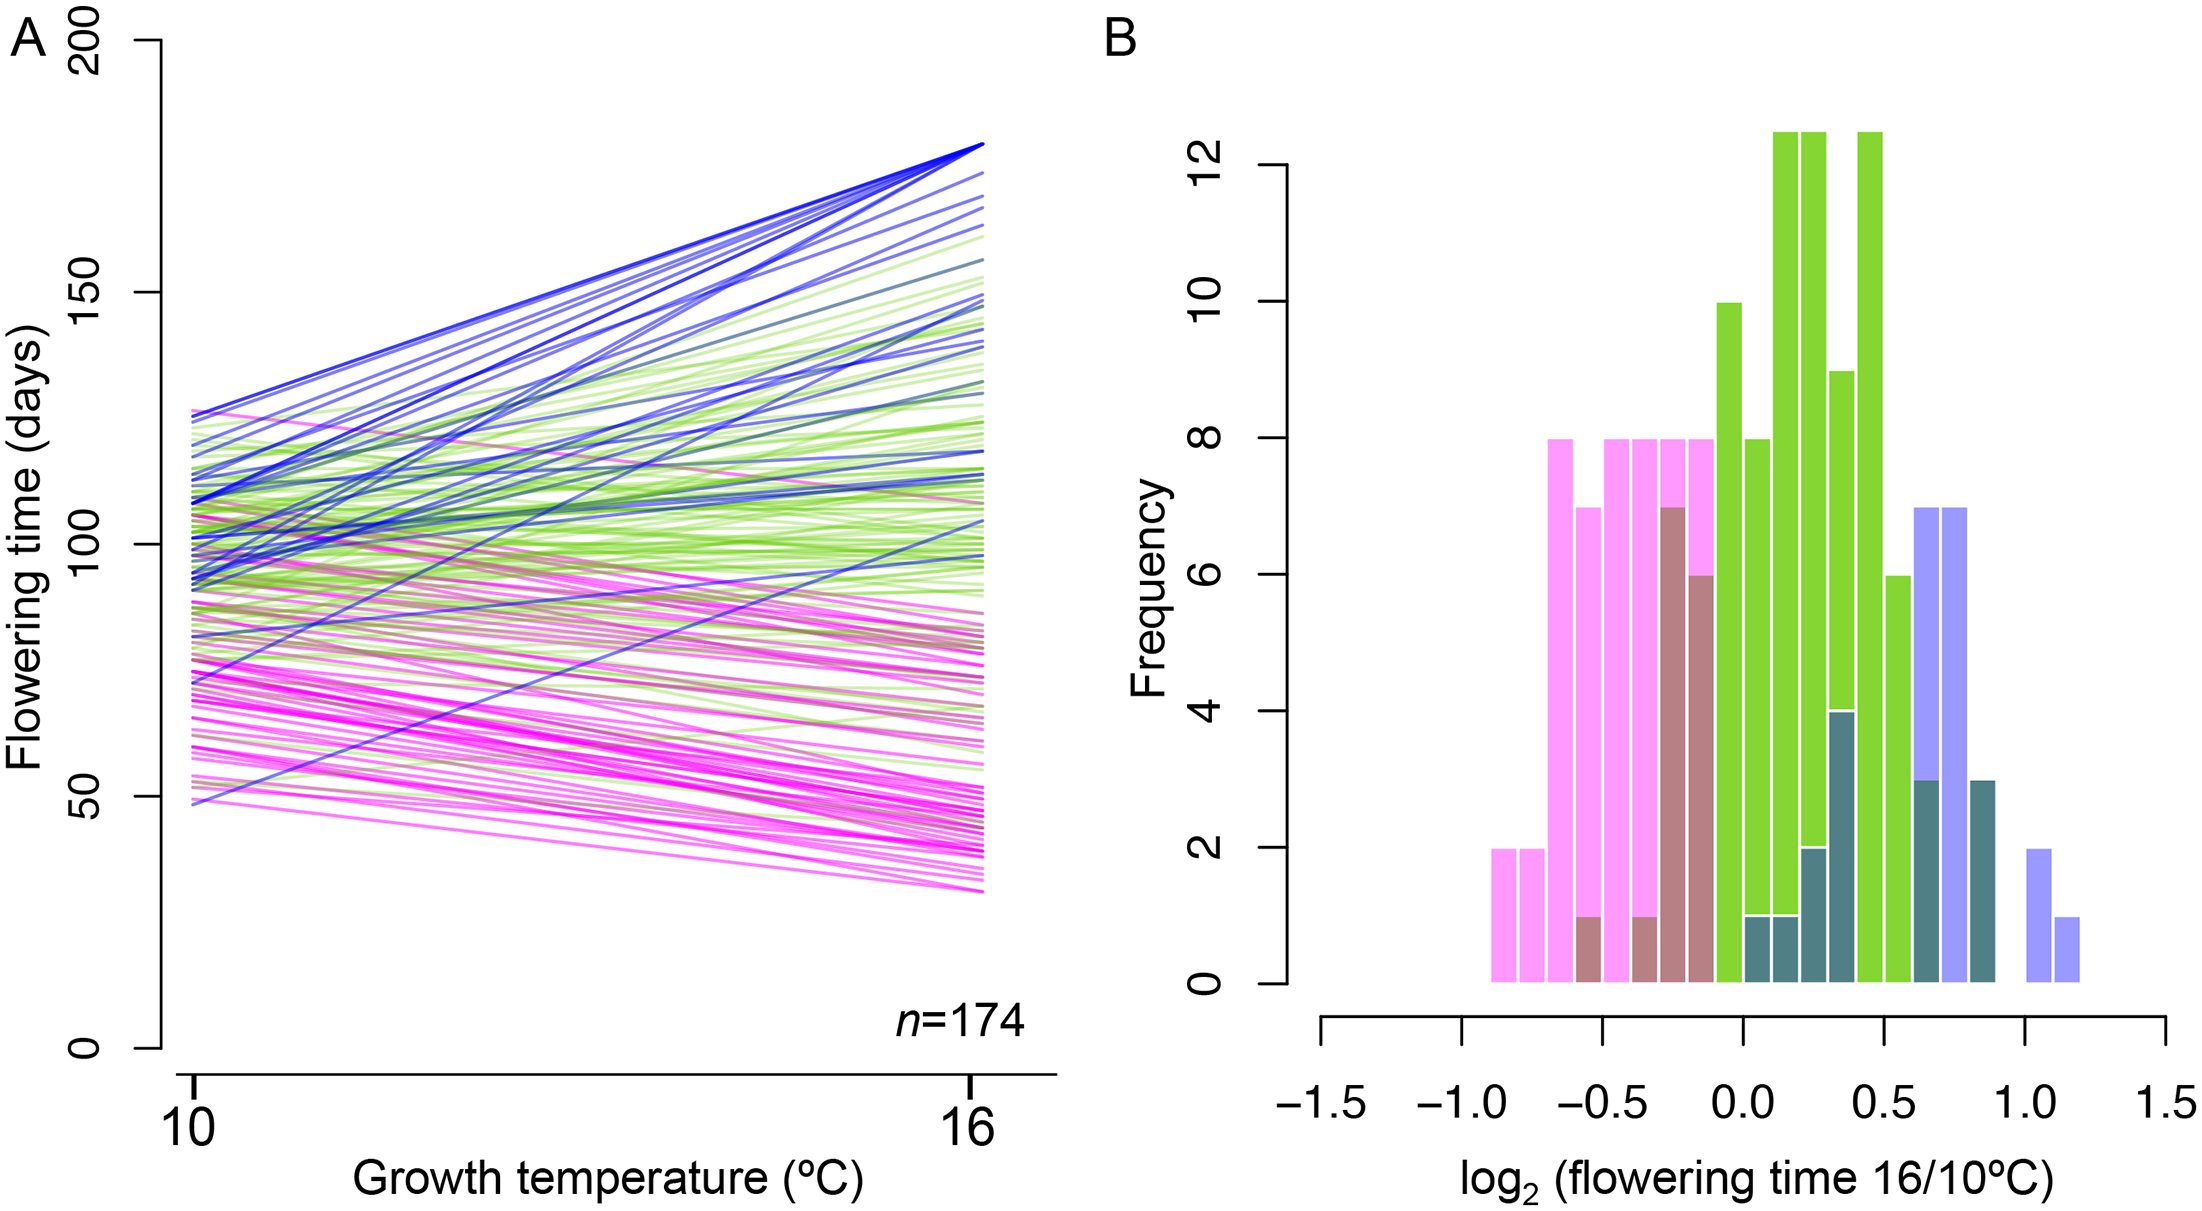 Reaction norms for flowering time at 10°C and 16°C in 173 Swedish lines (plus Col-0).